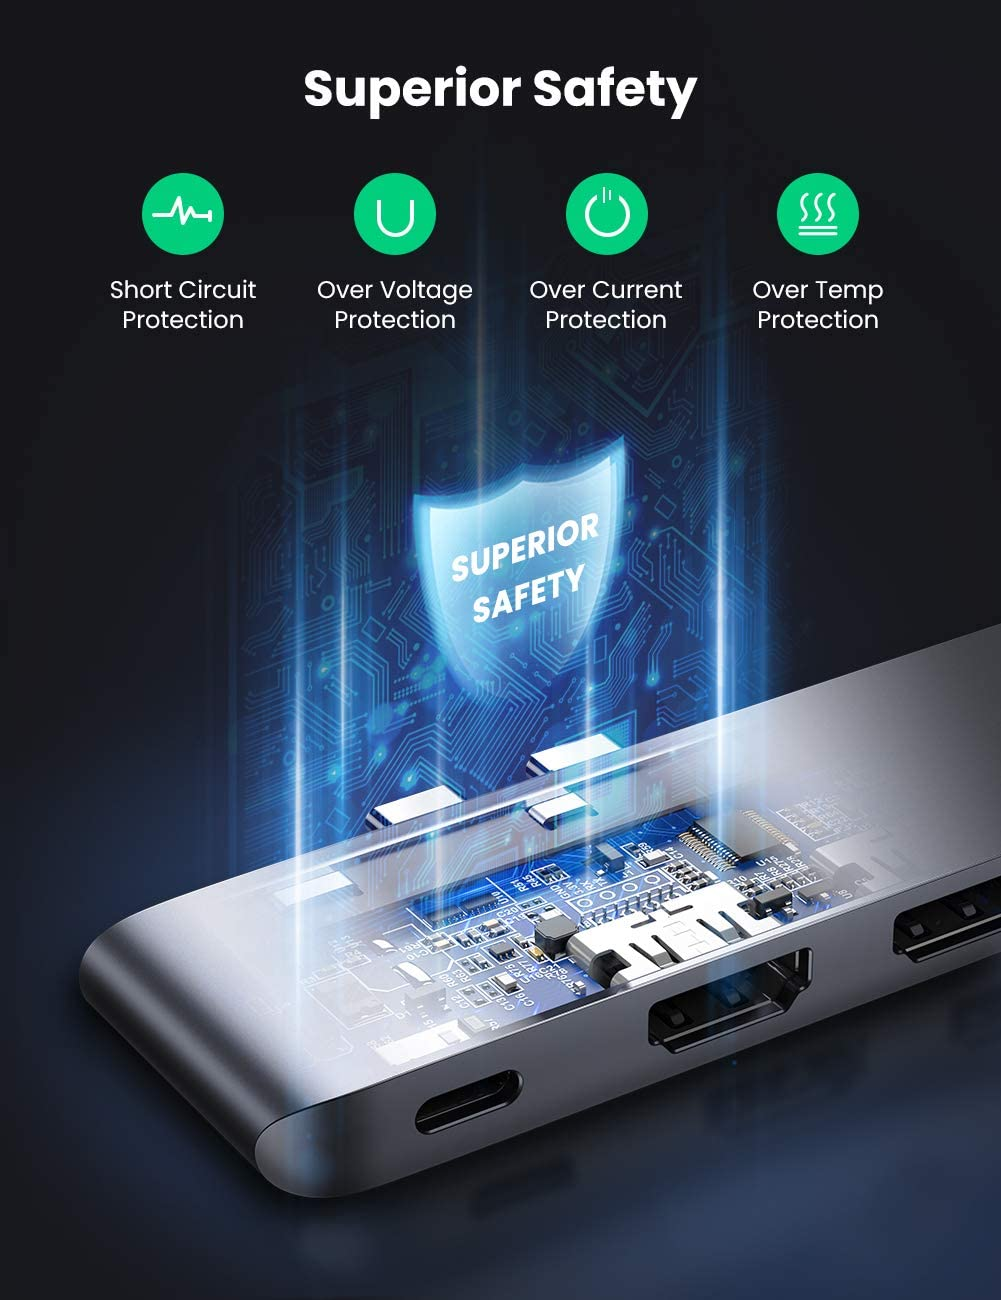 2 USB 3.0 UGREEN USB C to Dual HDMI Adapter MacBook Pro 2019 2018 2017 USB C to SD//TF Card Reader for MacBook Air 2020 2019 2018 100W PD Port 7 in 1 USB C Thunderbolt 3 Adapter to Dual HDMI